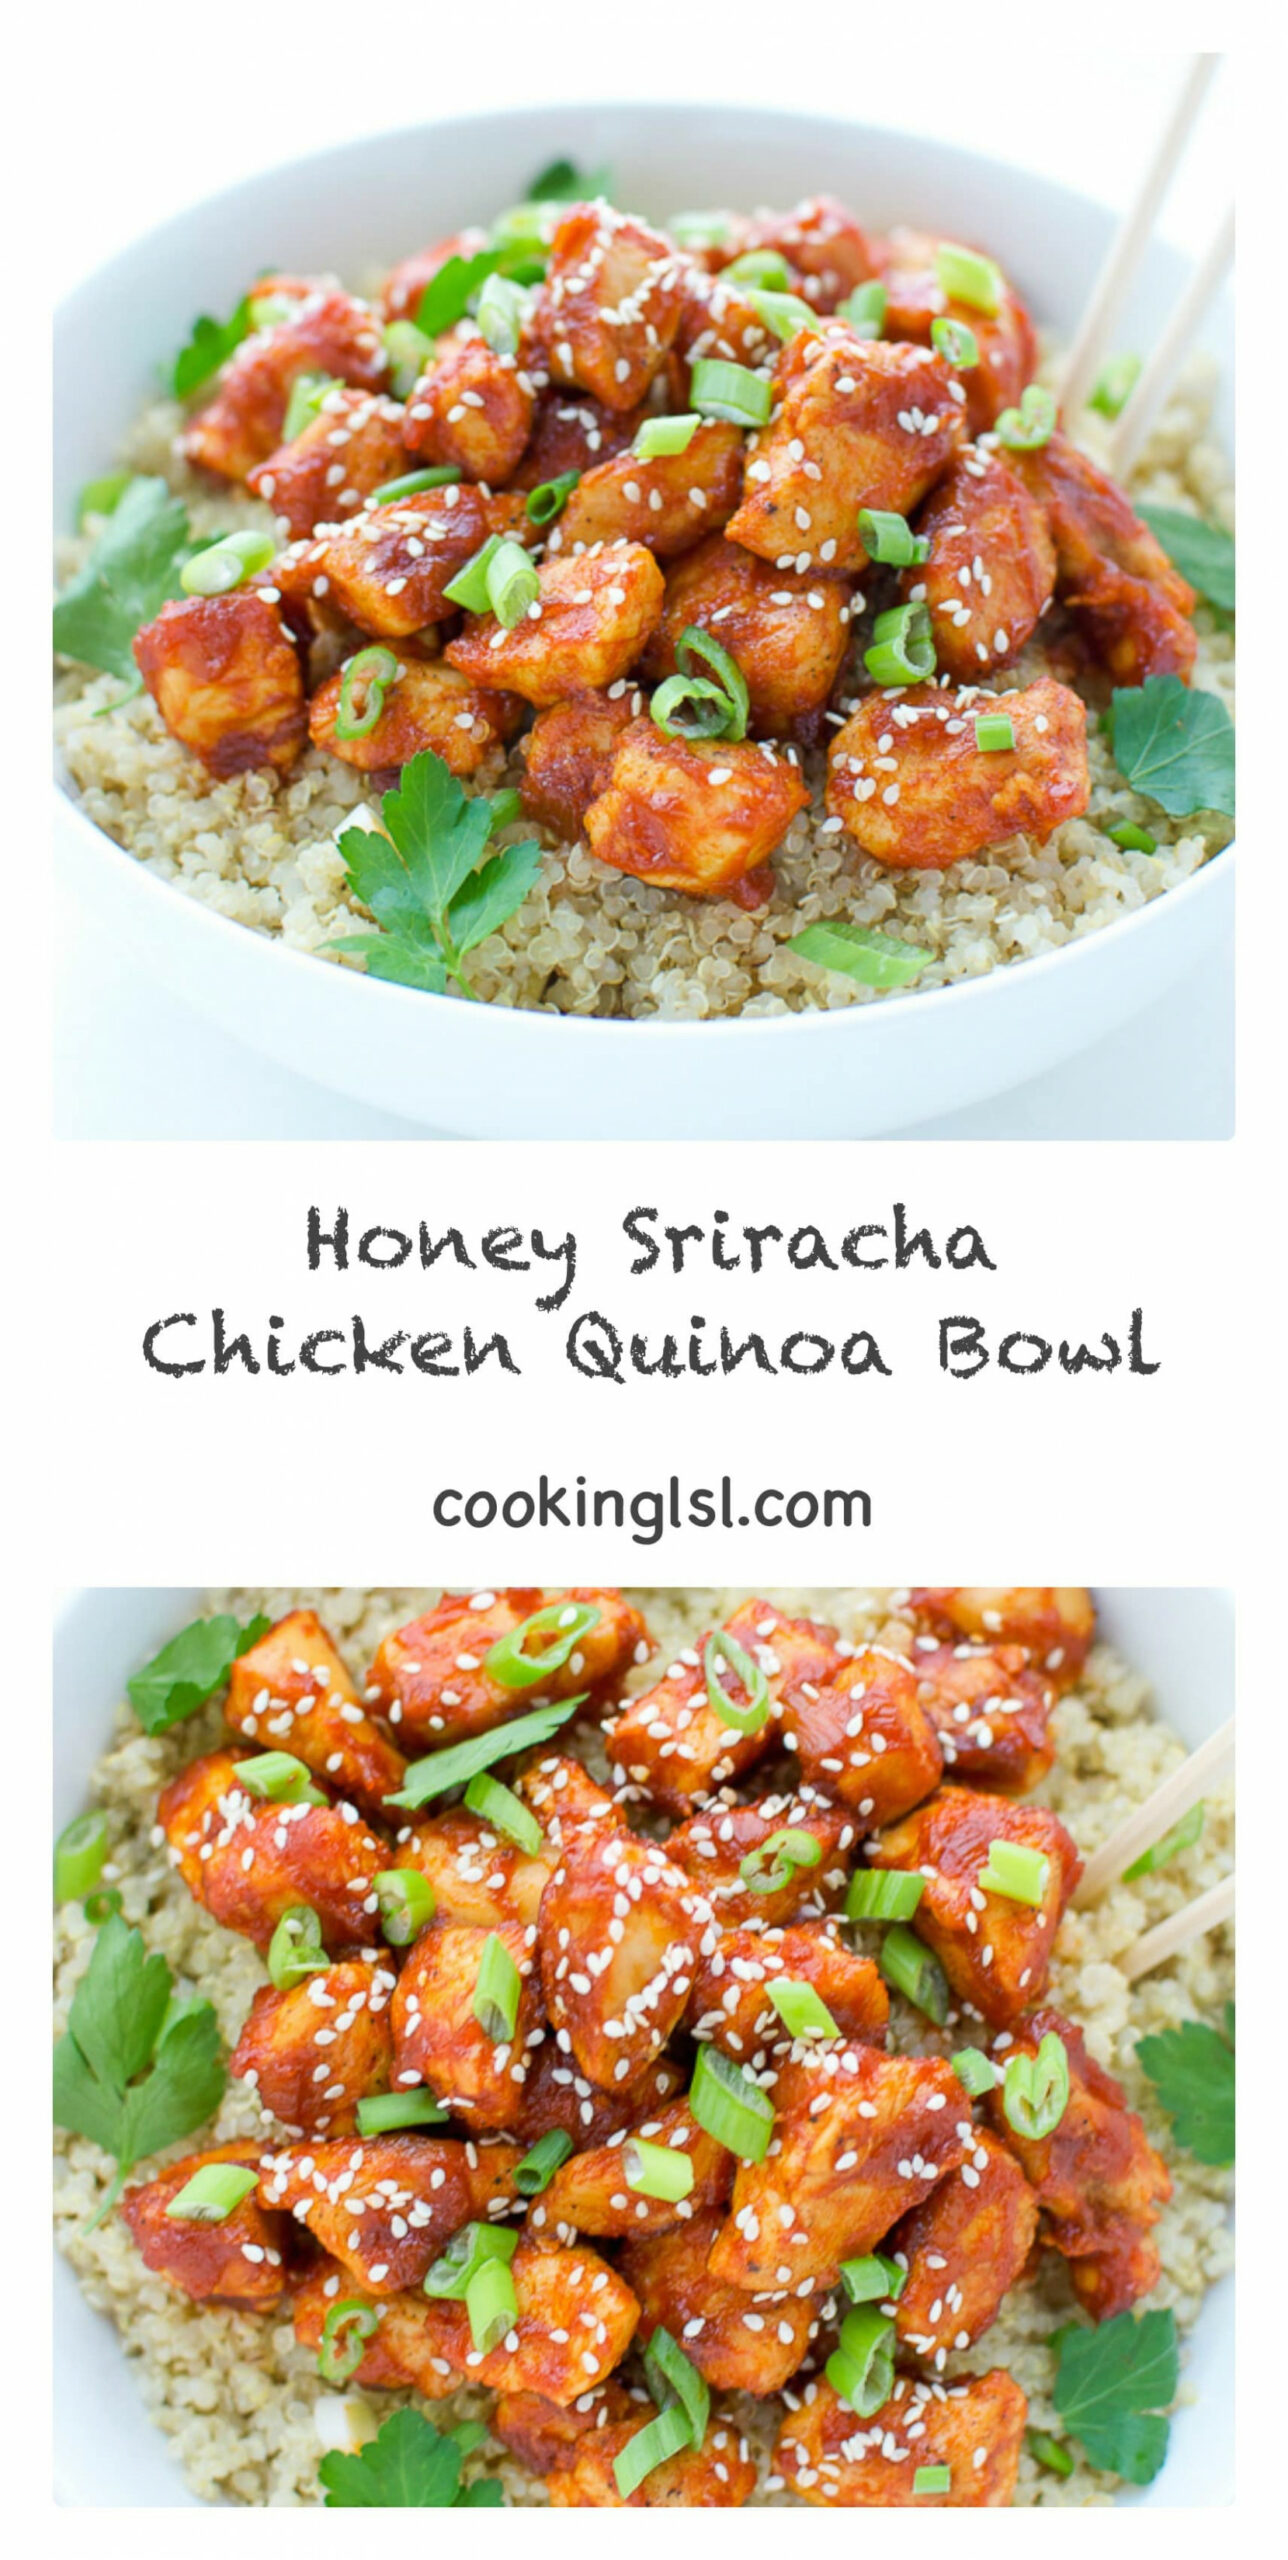 Honey Sriracha Chicken Quinoa Bowl - Quinoa Recipes Chicken